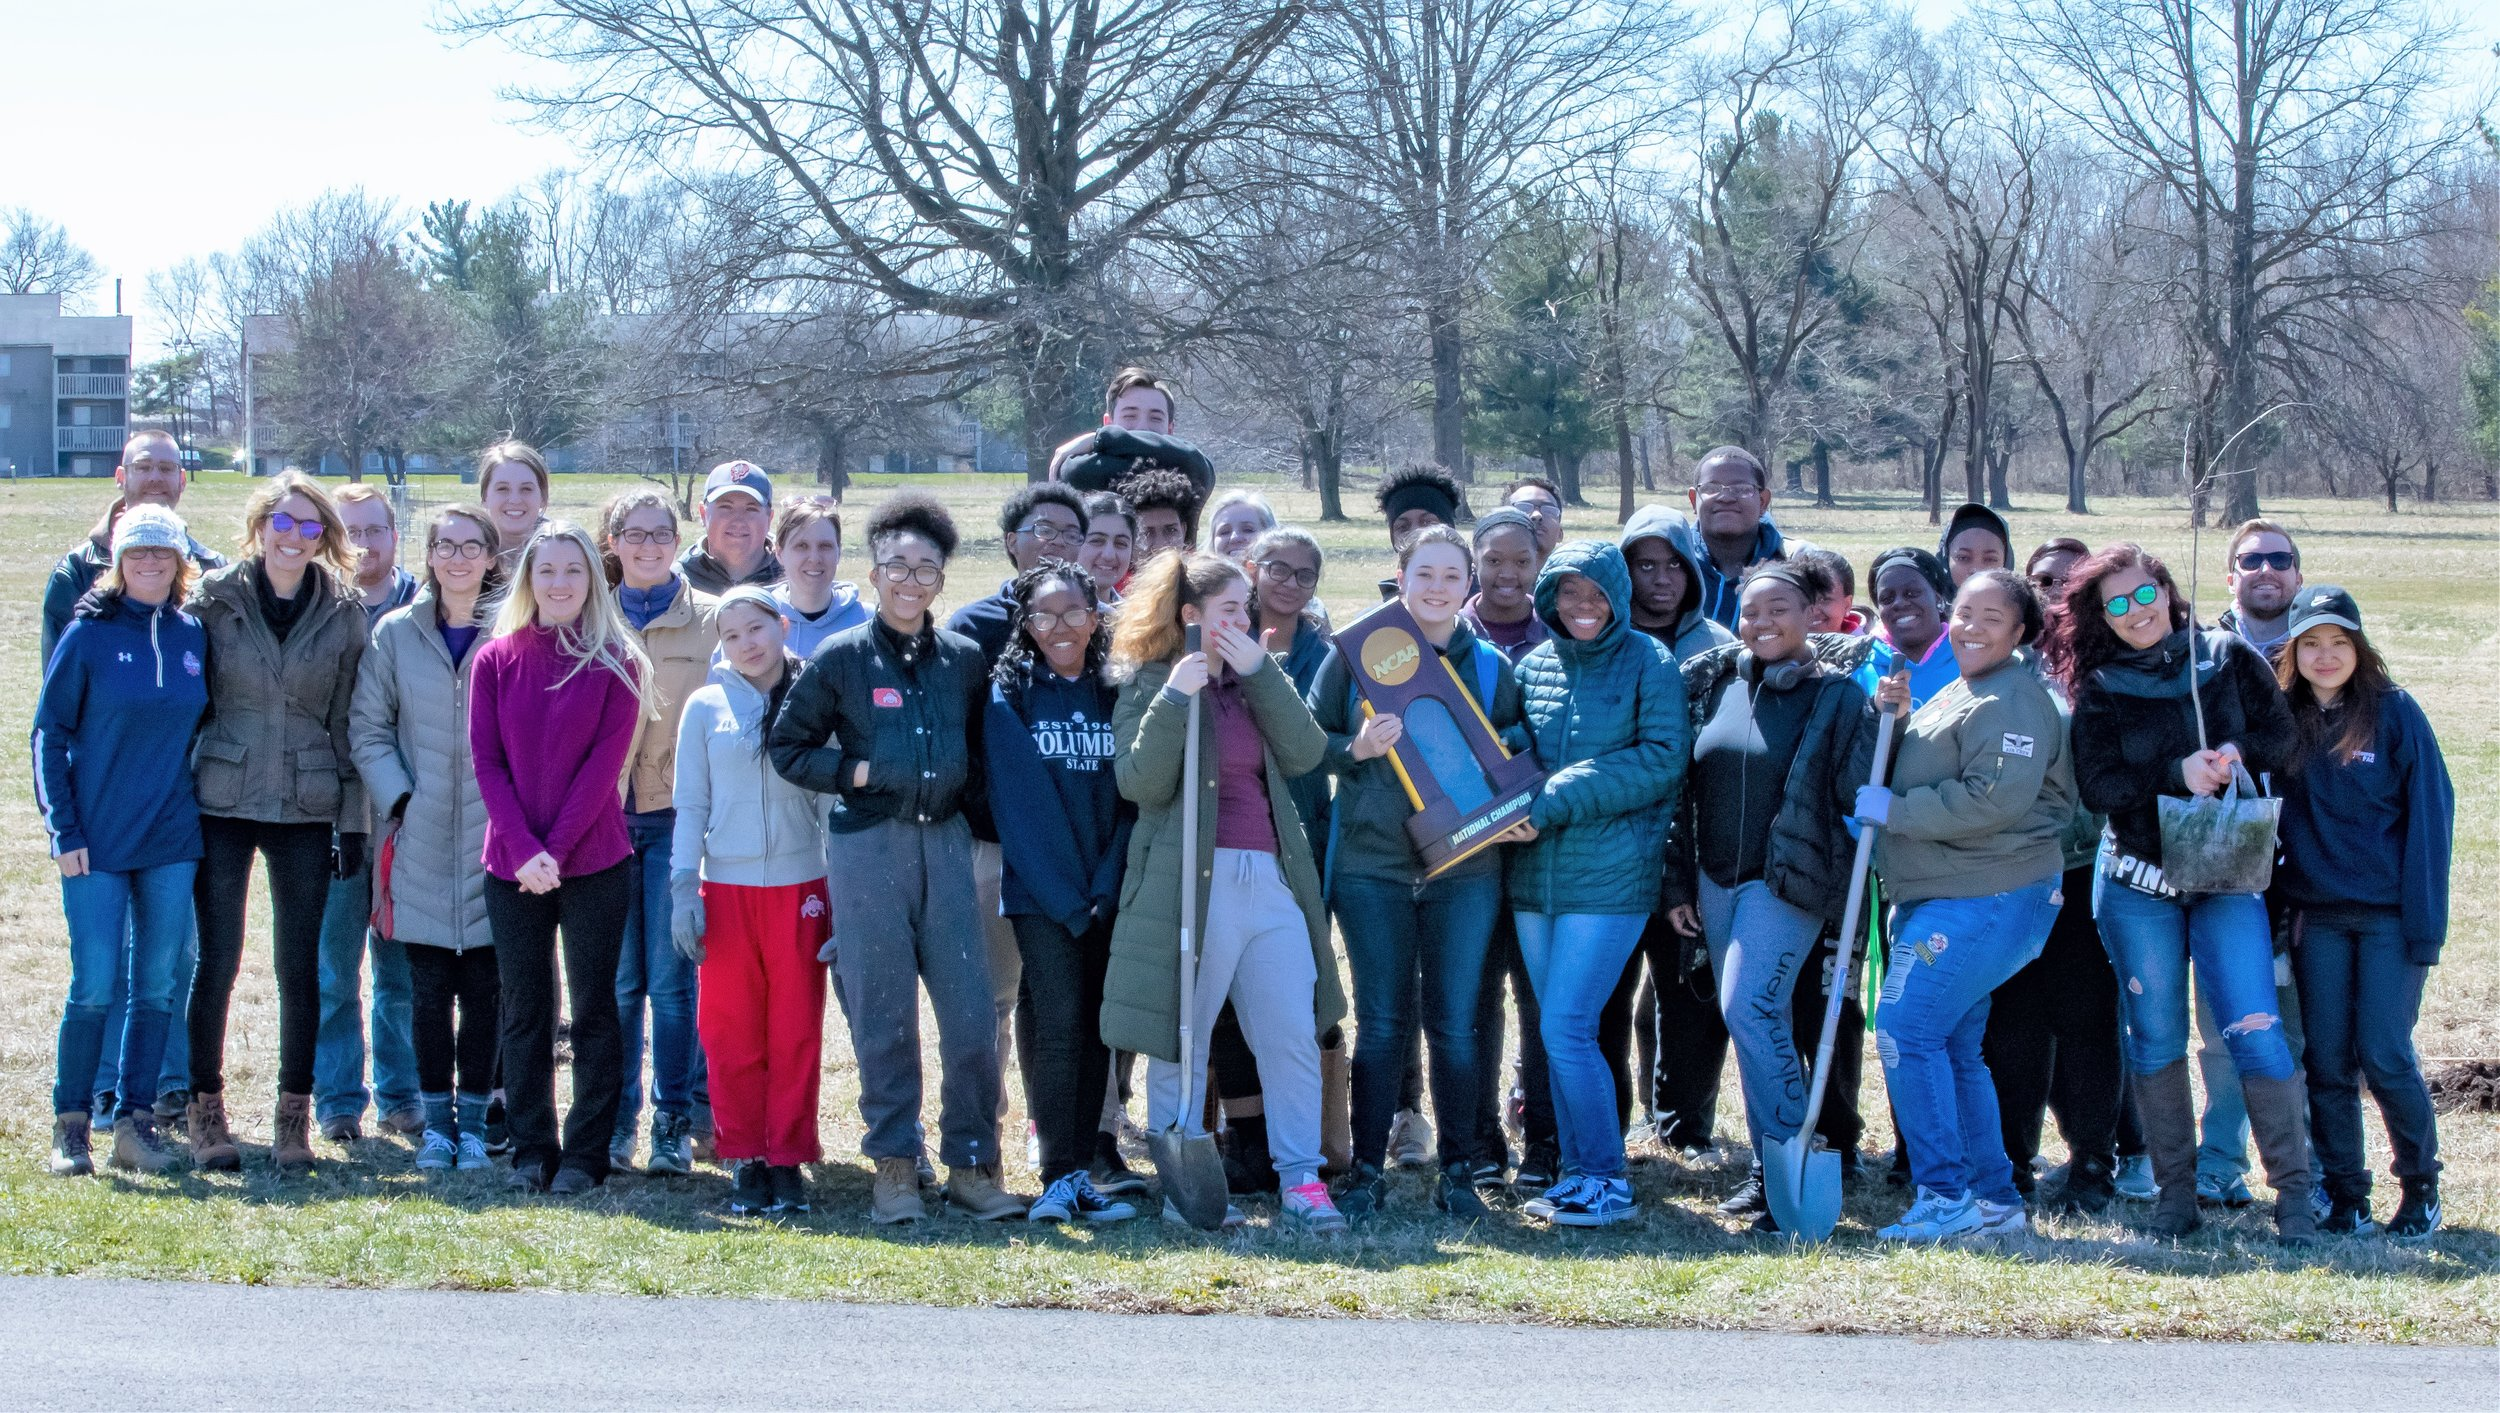 community volunteers pose with the NCAA Women's Final Four trophy after a morning of planting trees at Walnut Hill Park. April 23, 2018. Photo: CLOC